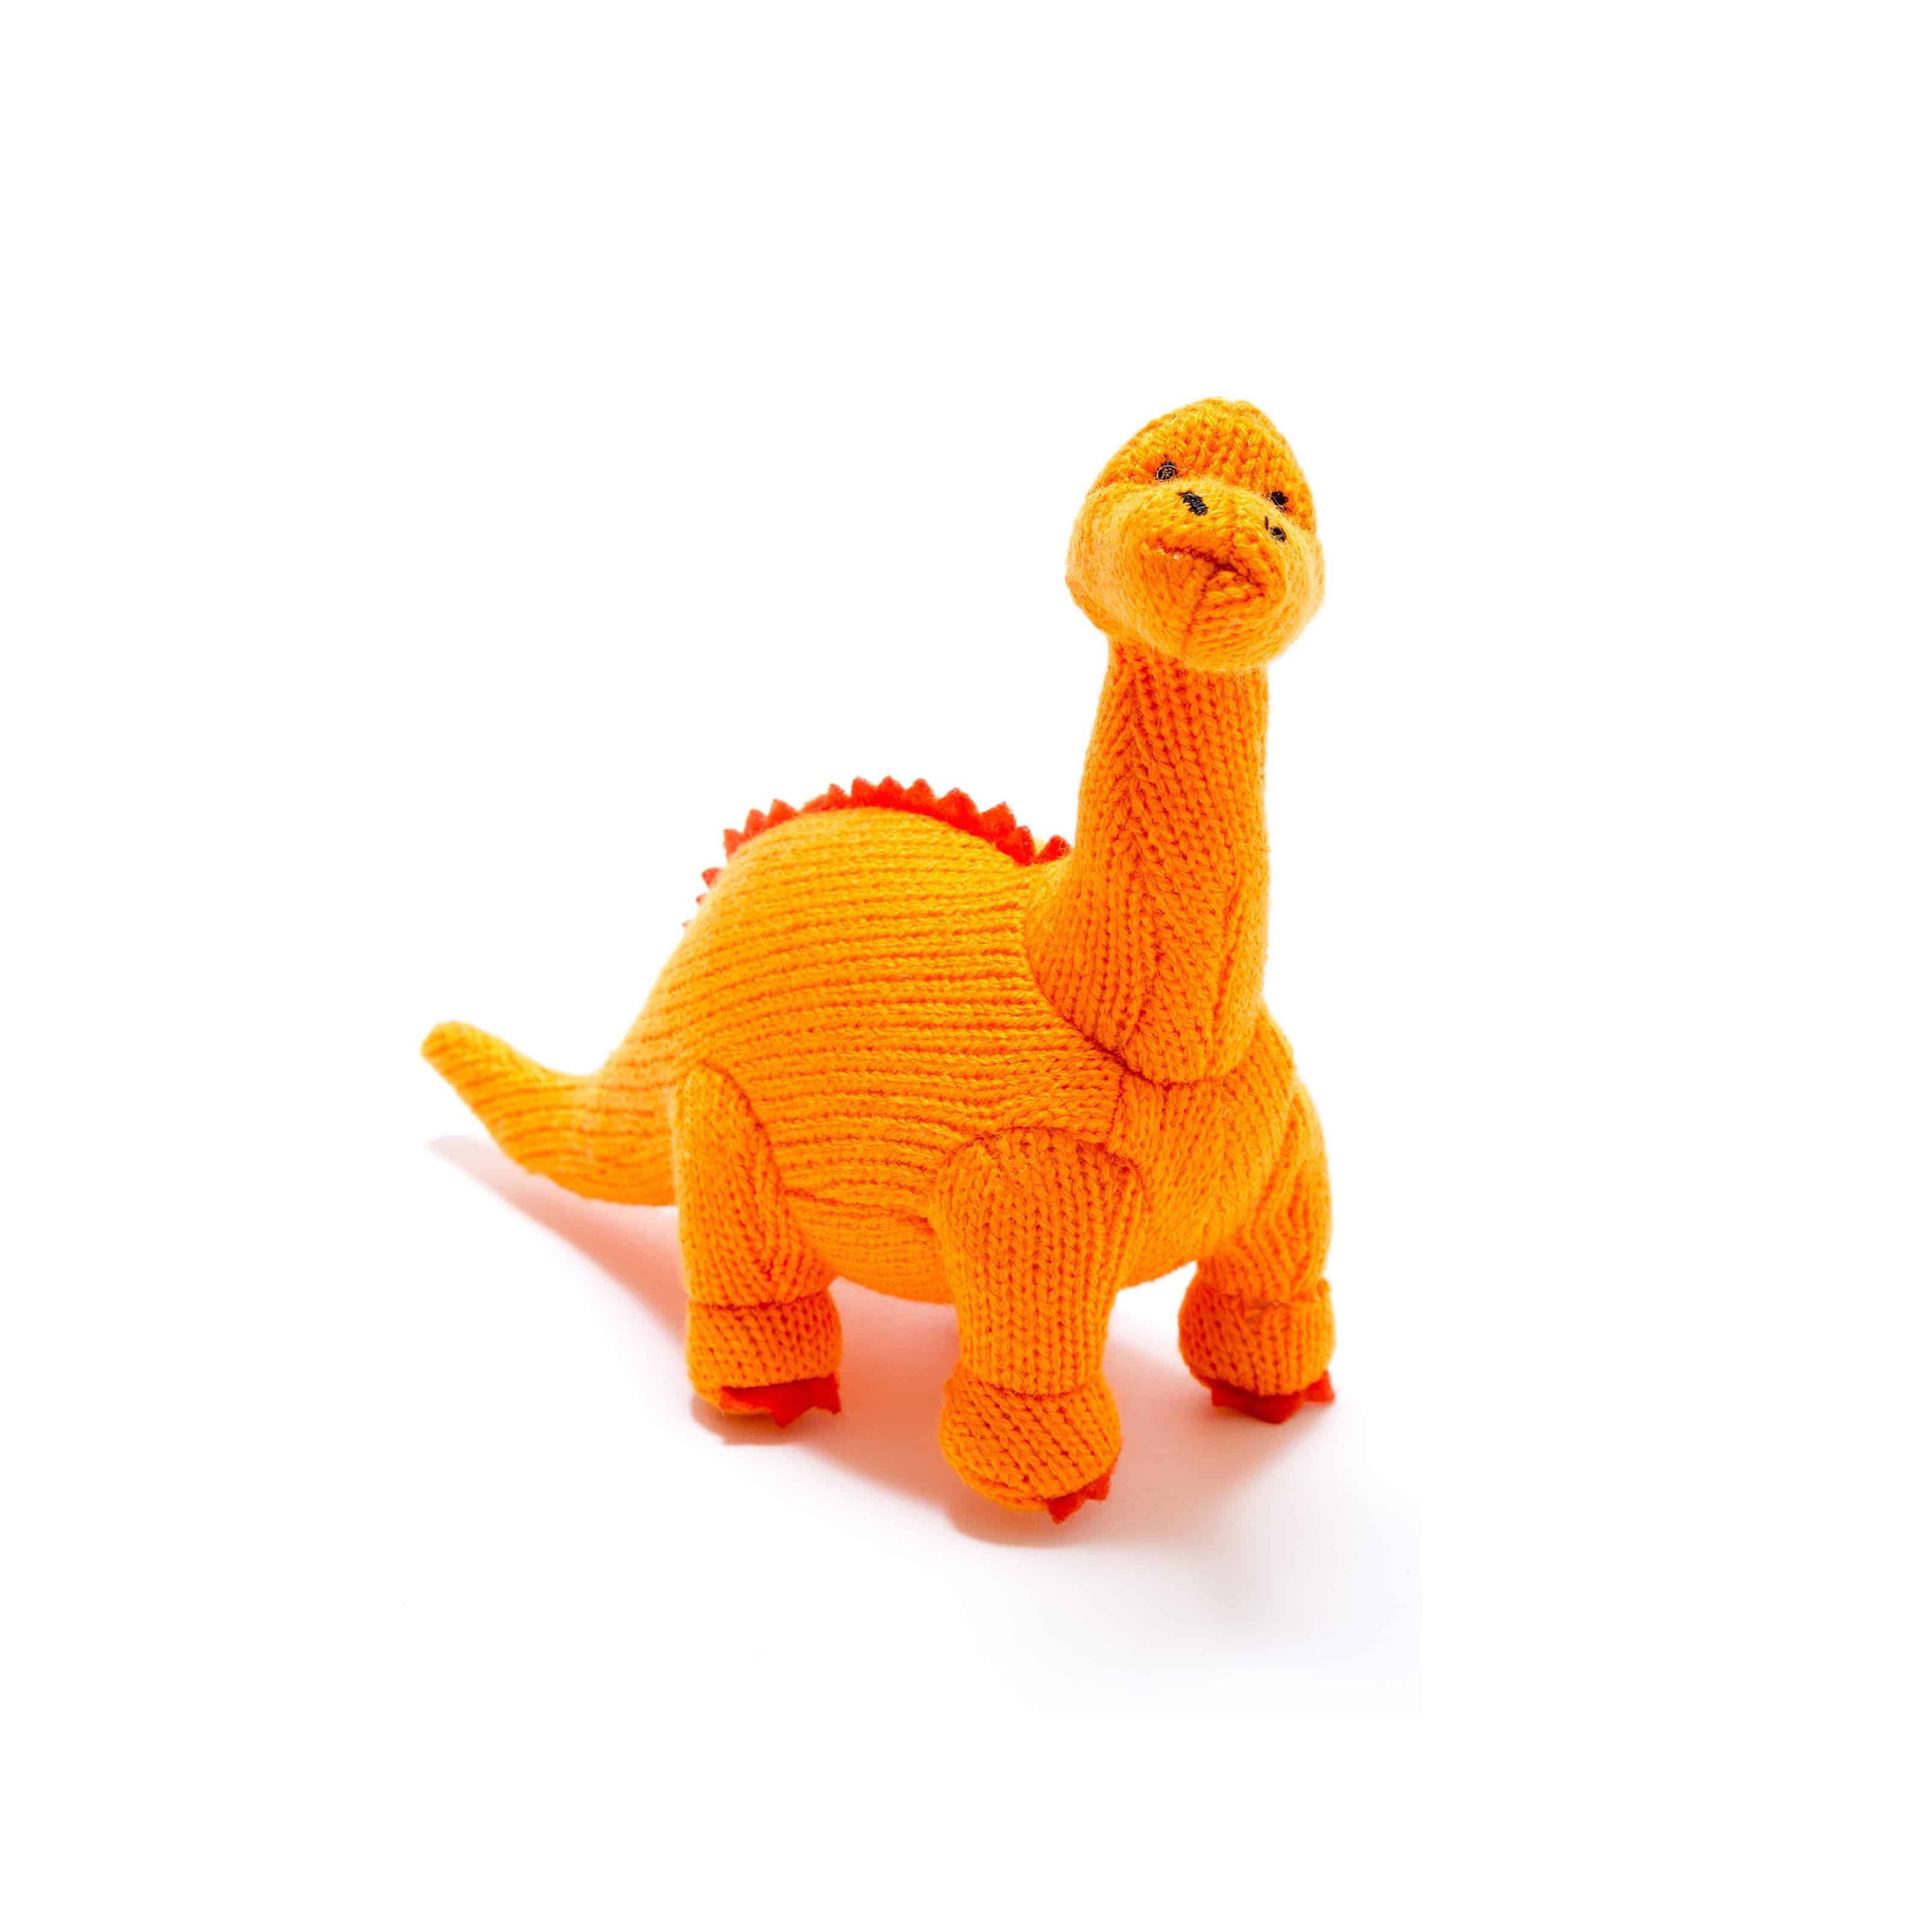 Knitted Orange Medium Diplodocus Toy